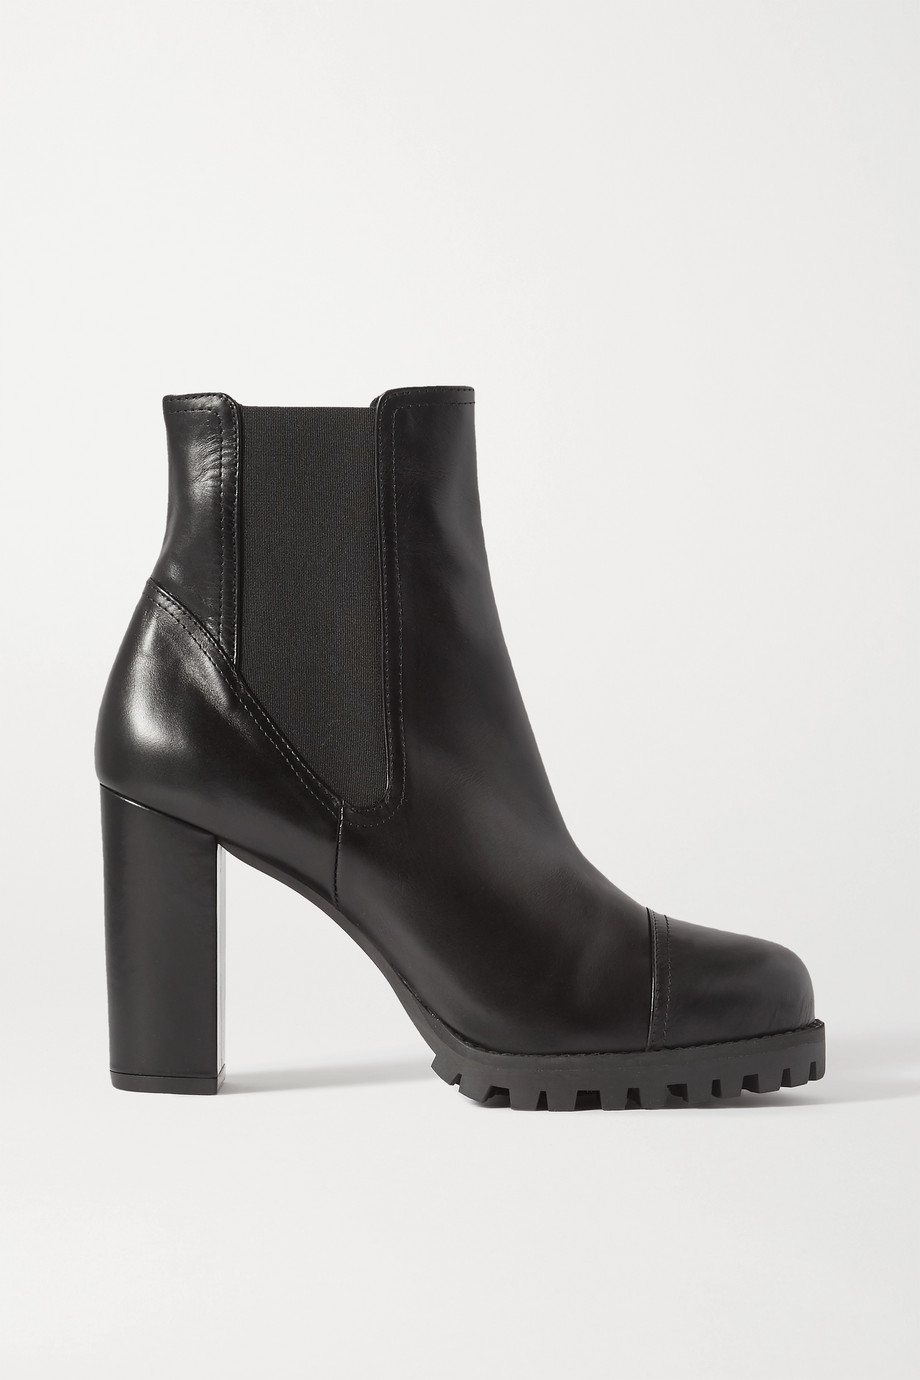 Stuart Weitzman Wenda leather ankle boots